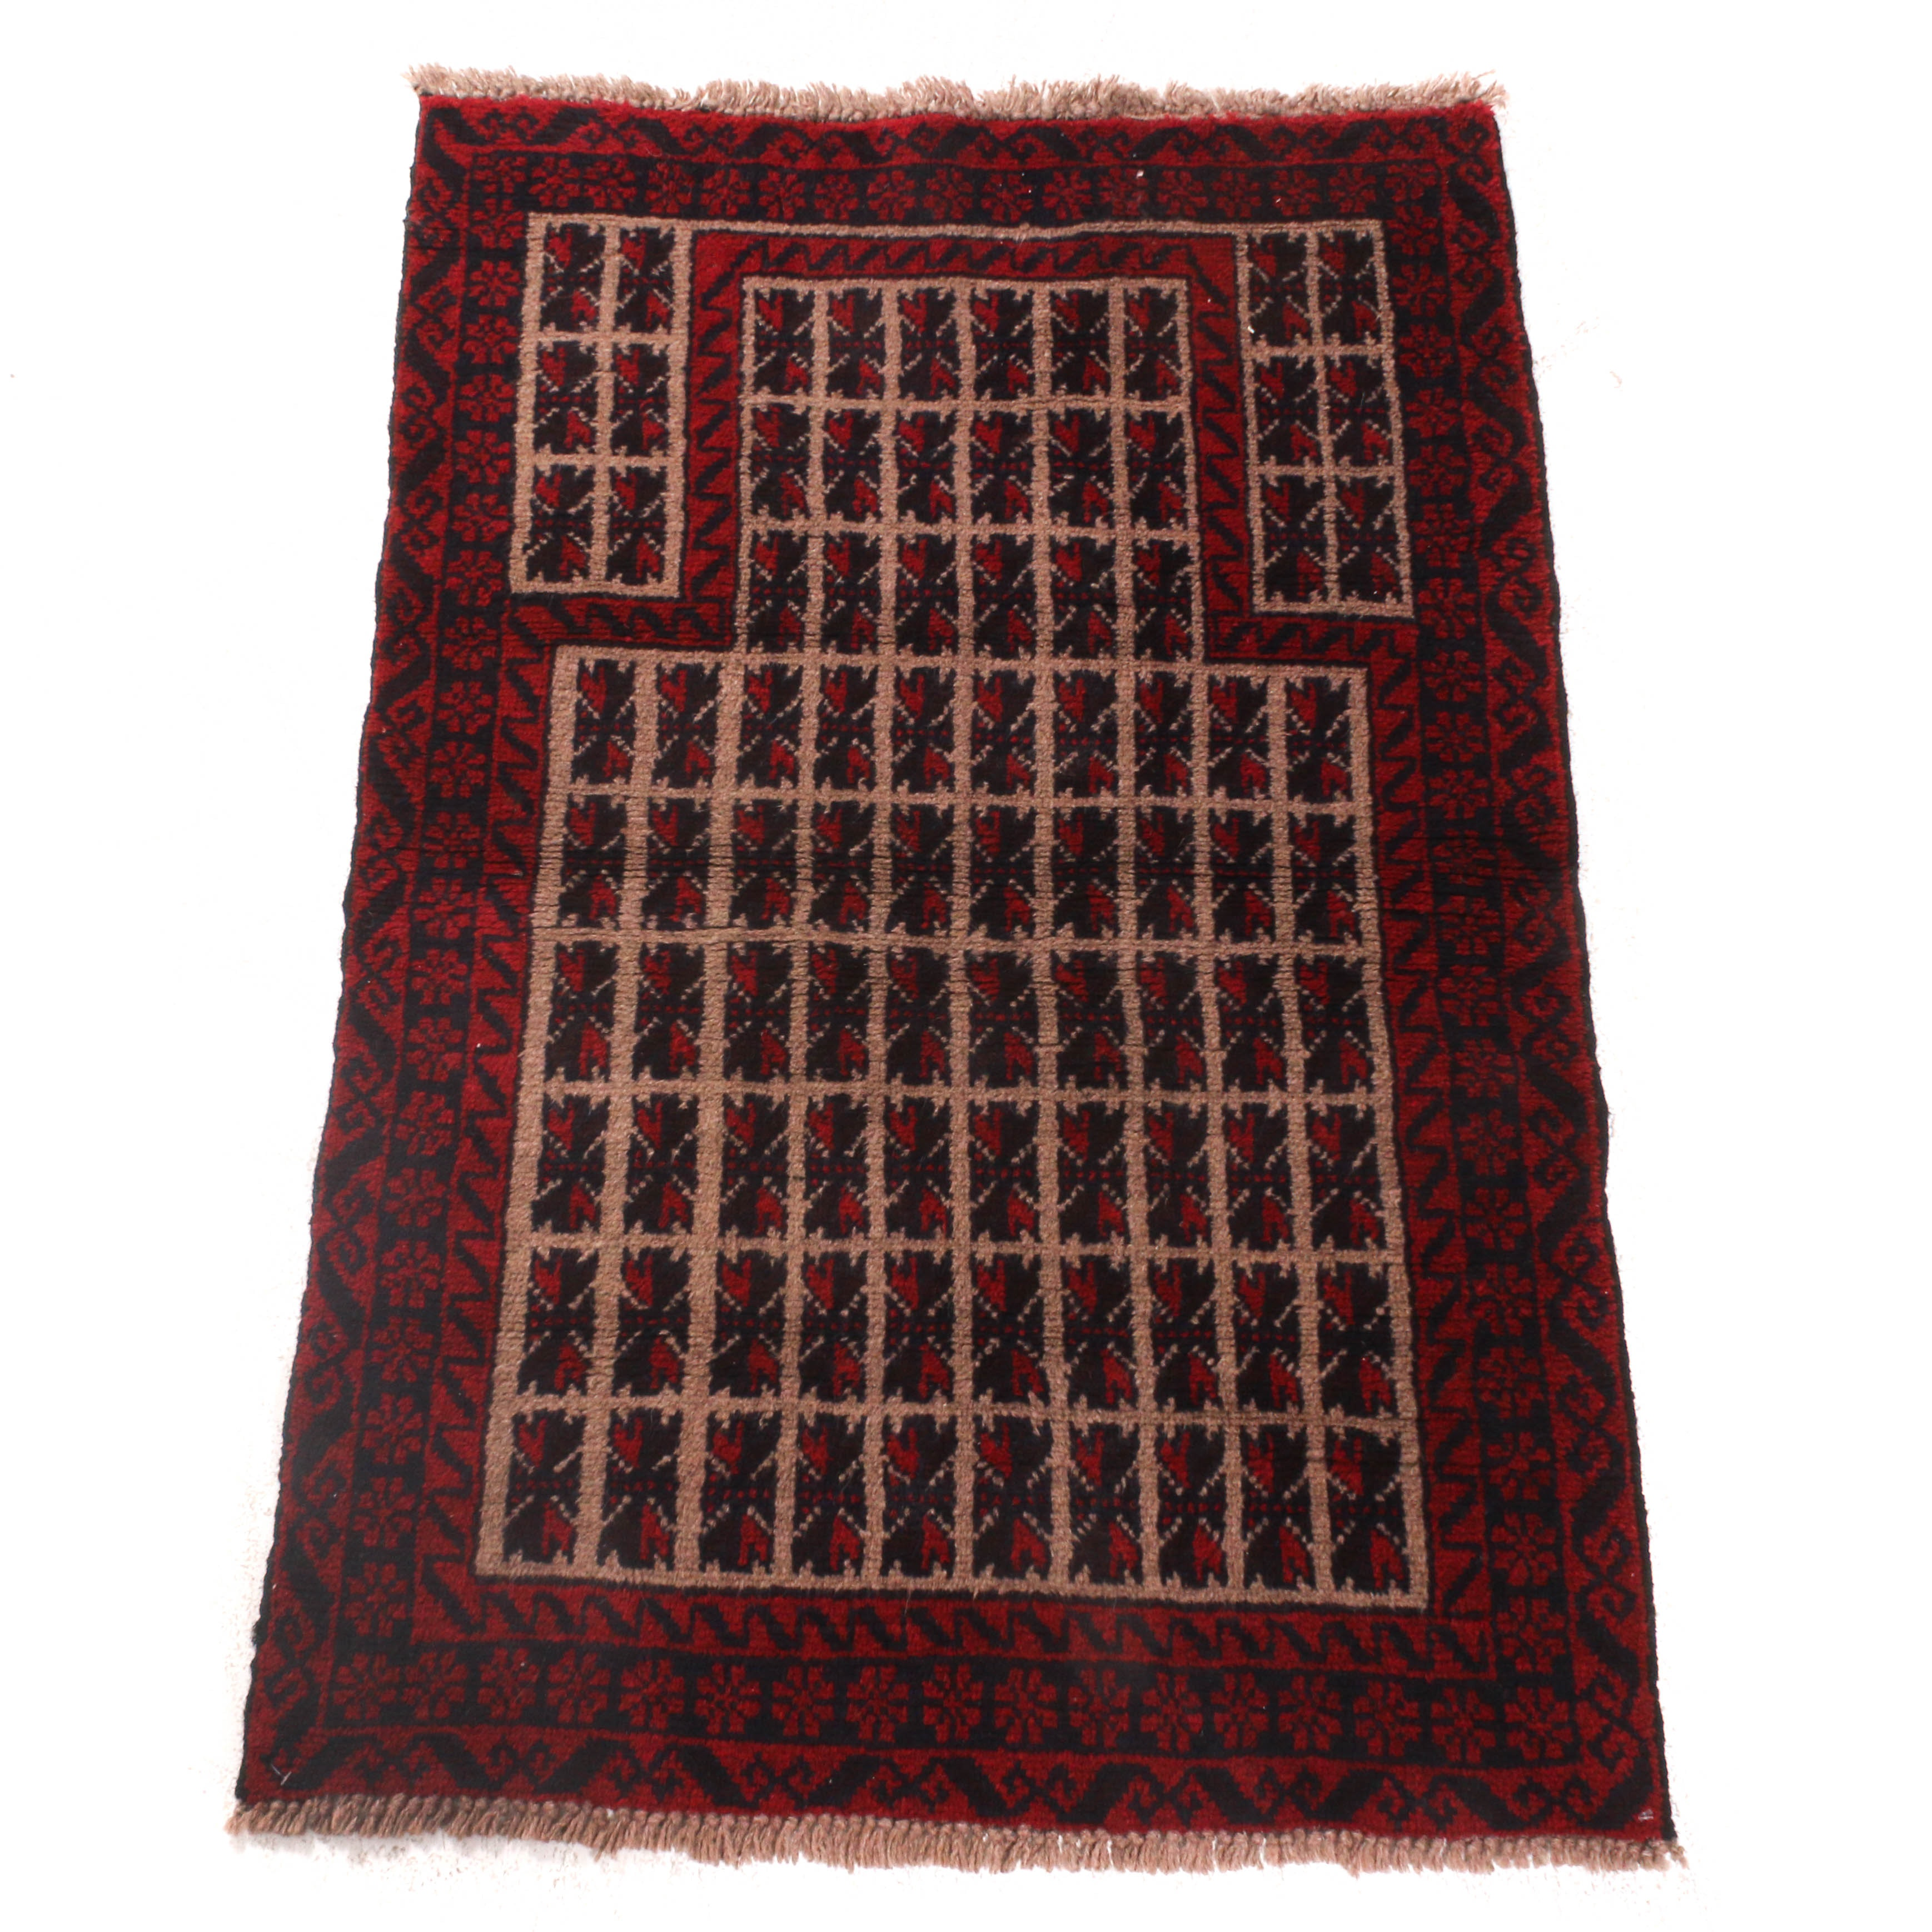 2'11 x 4'5 Hand-Knotted Persian Baluch Wool Rug